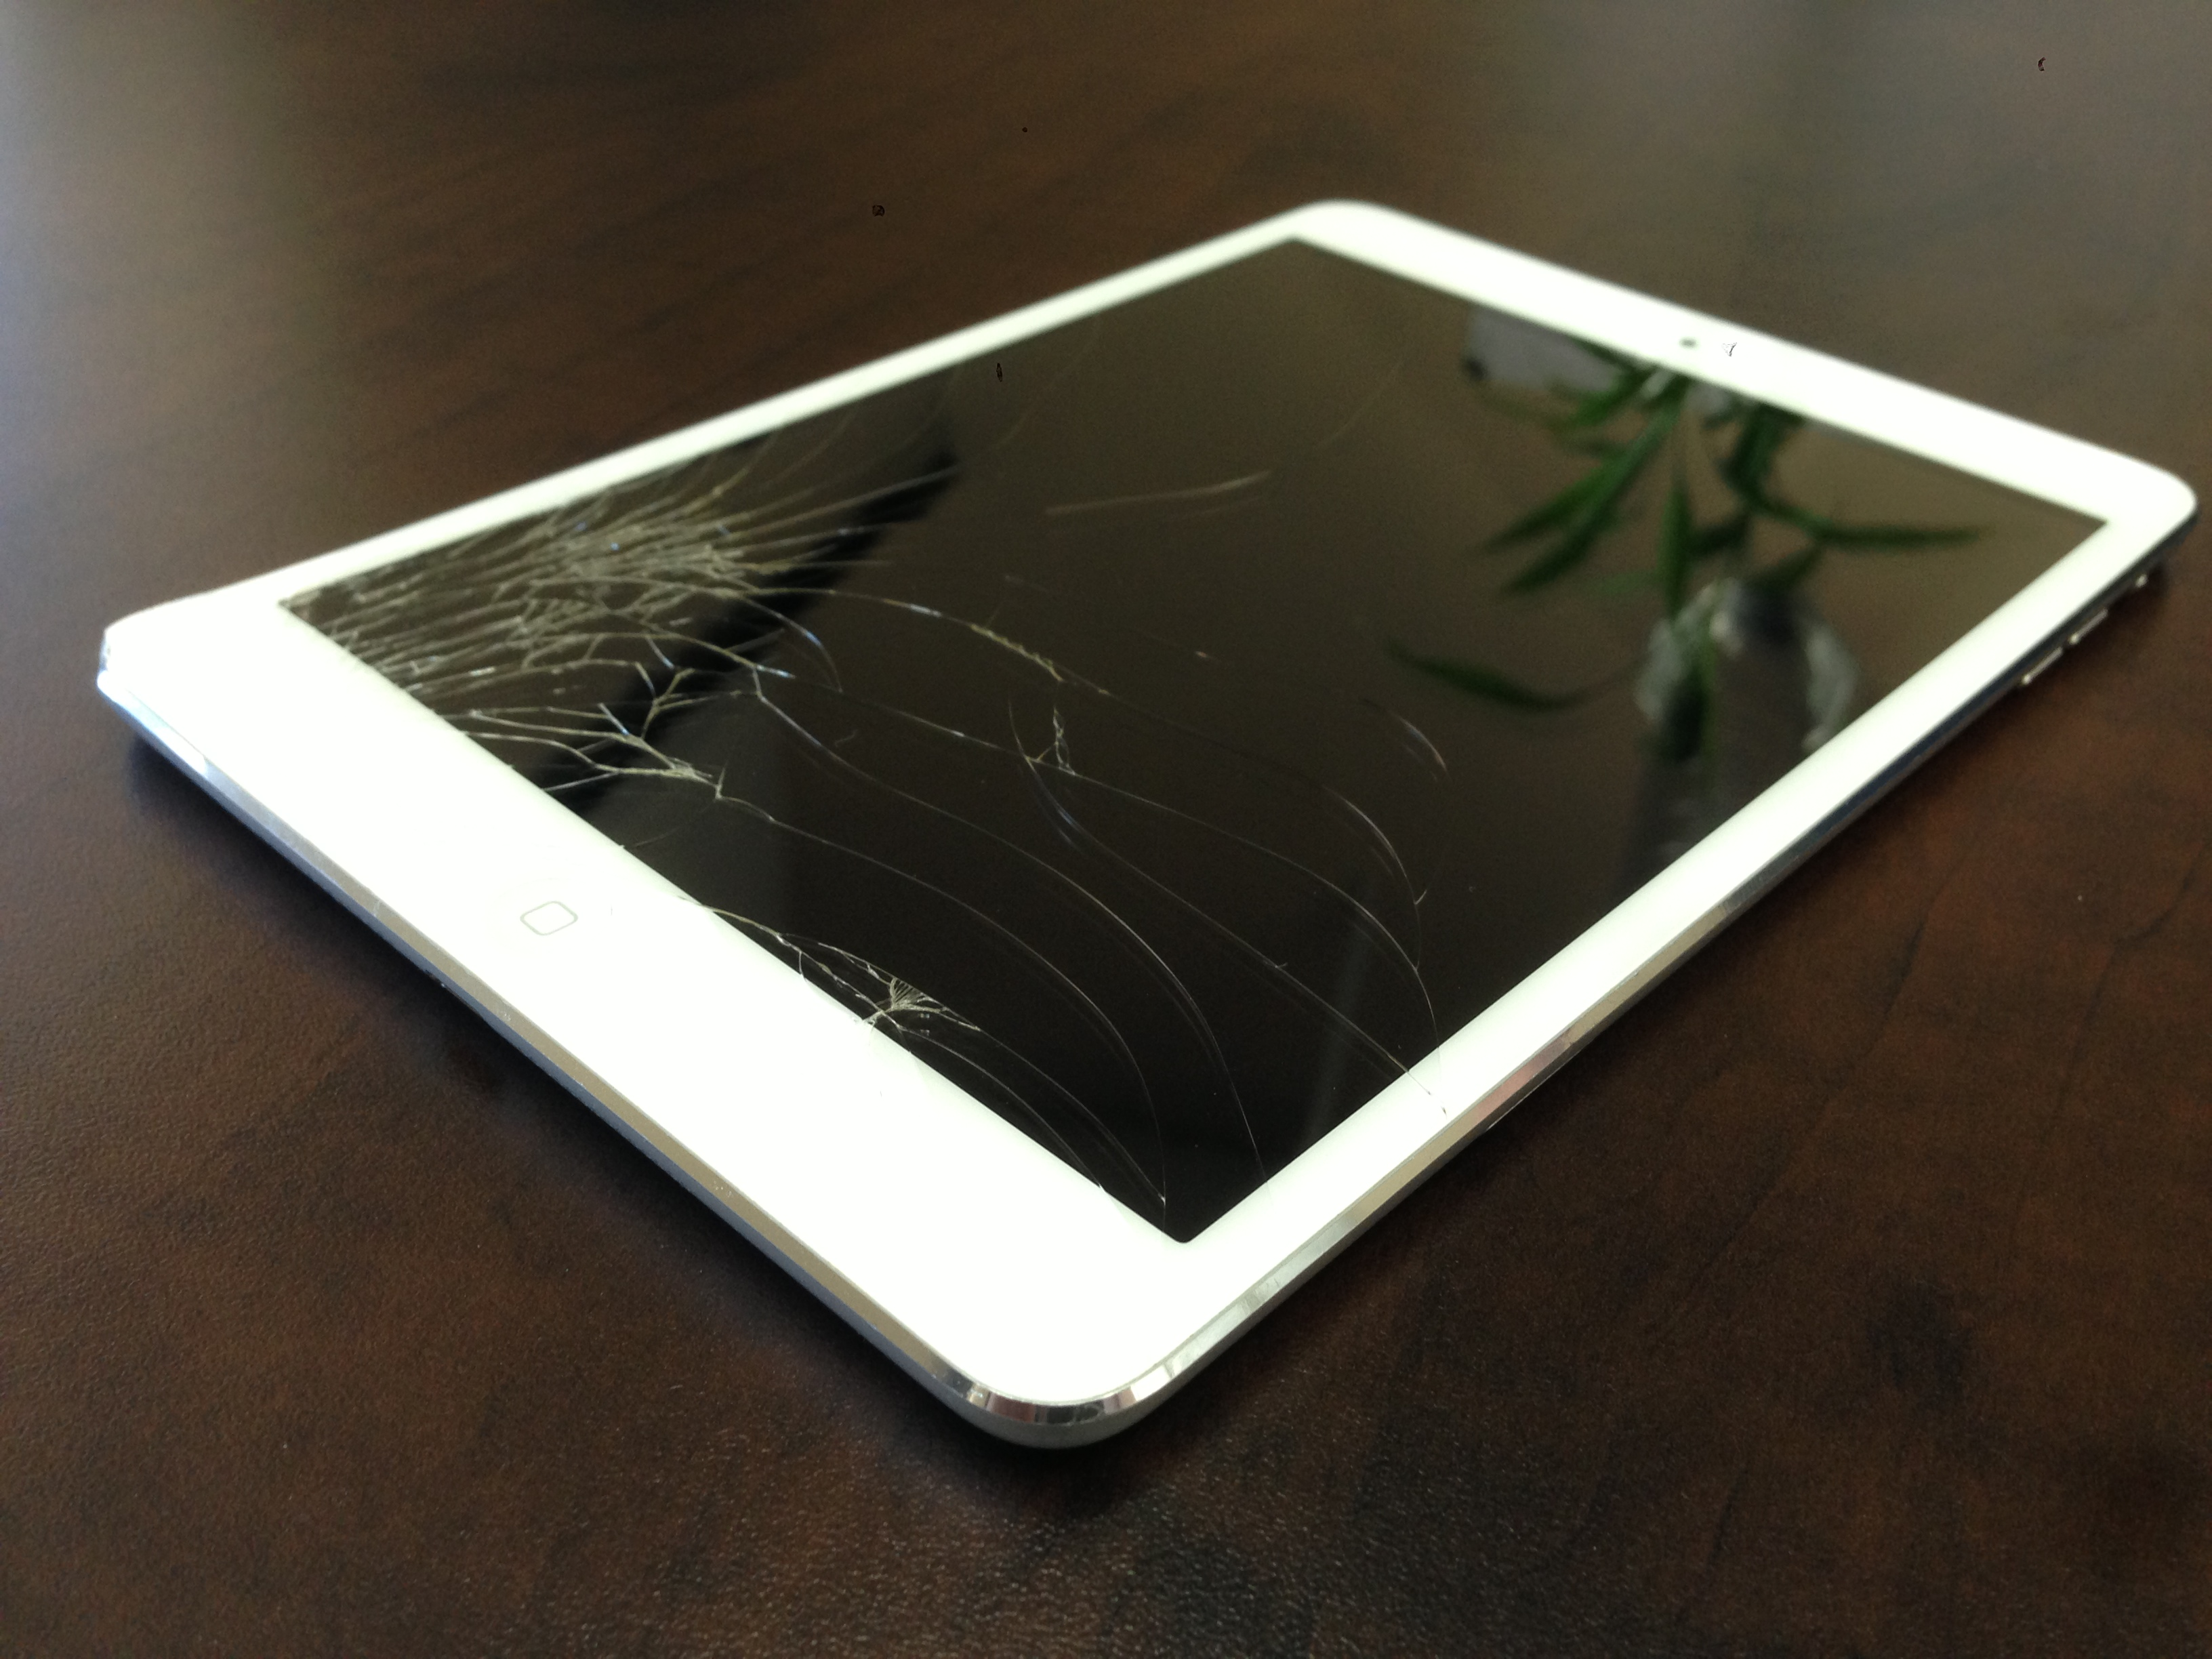 ipad small crack repair